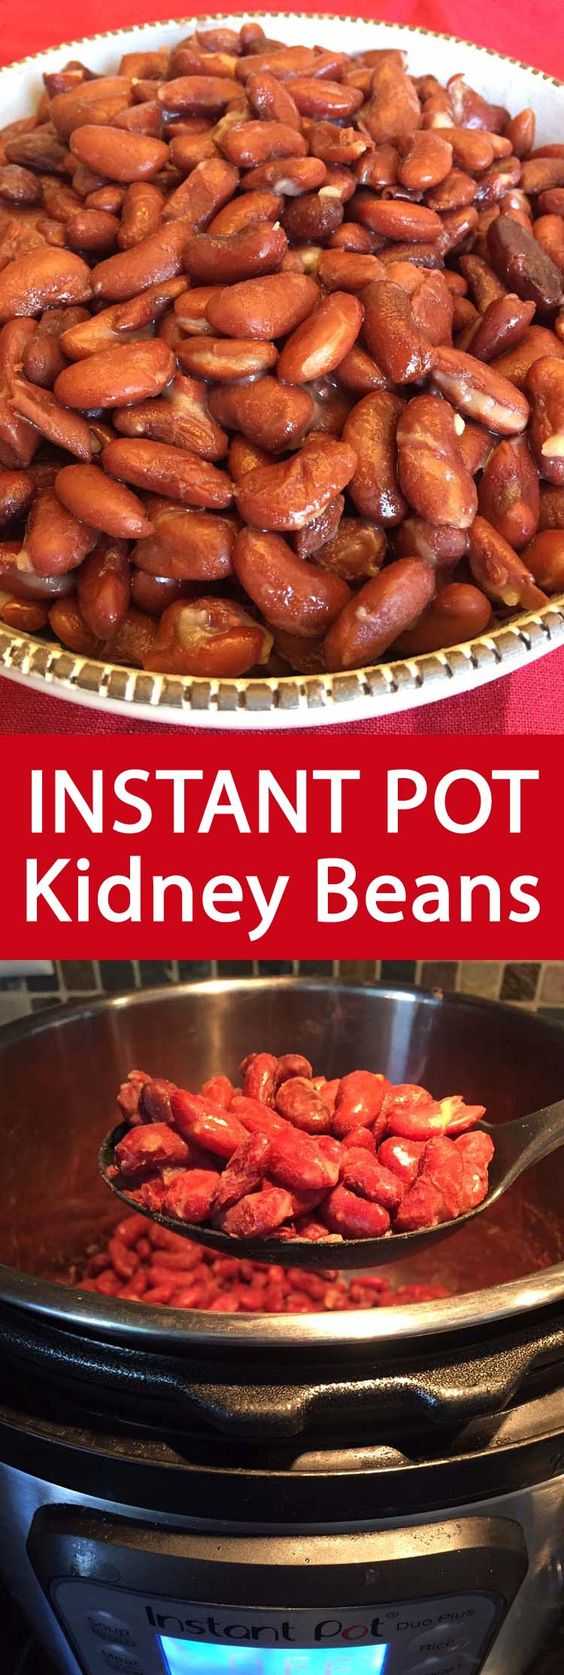 Instant Pot Red Kidney Beans